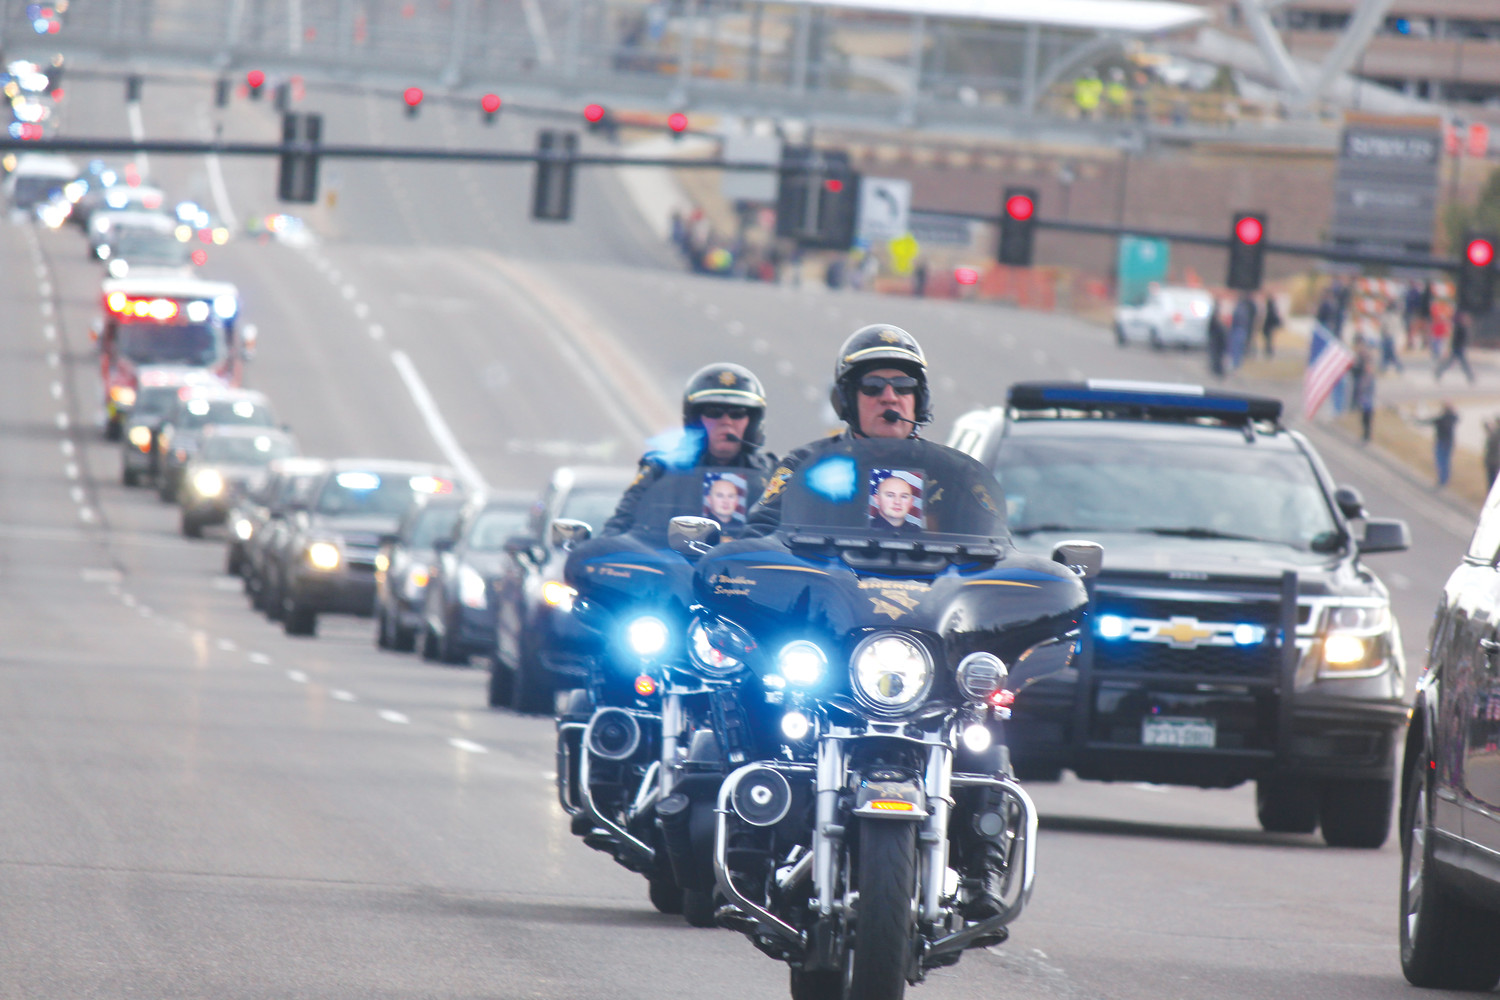 Thousands of officers take part in deputy's funeral procession